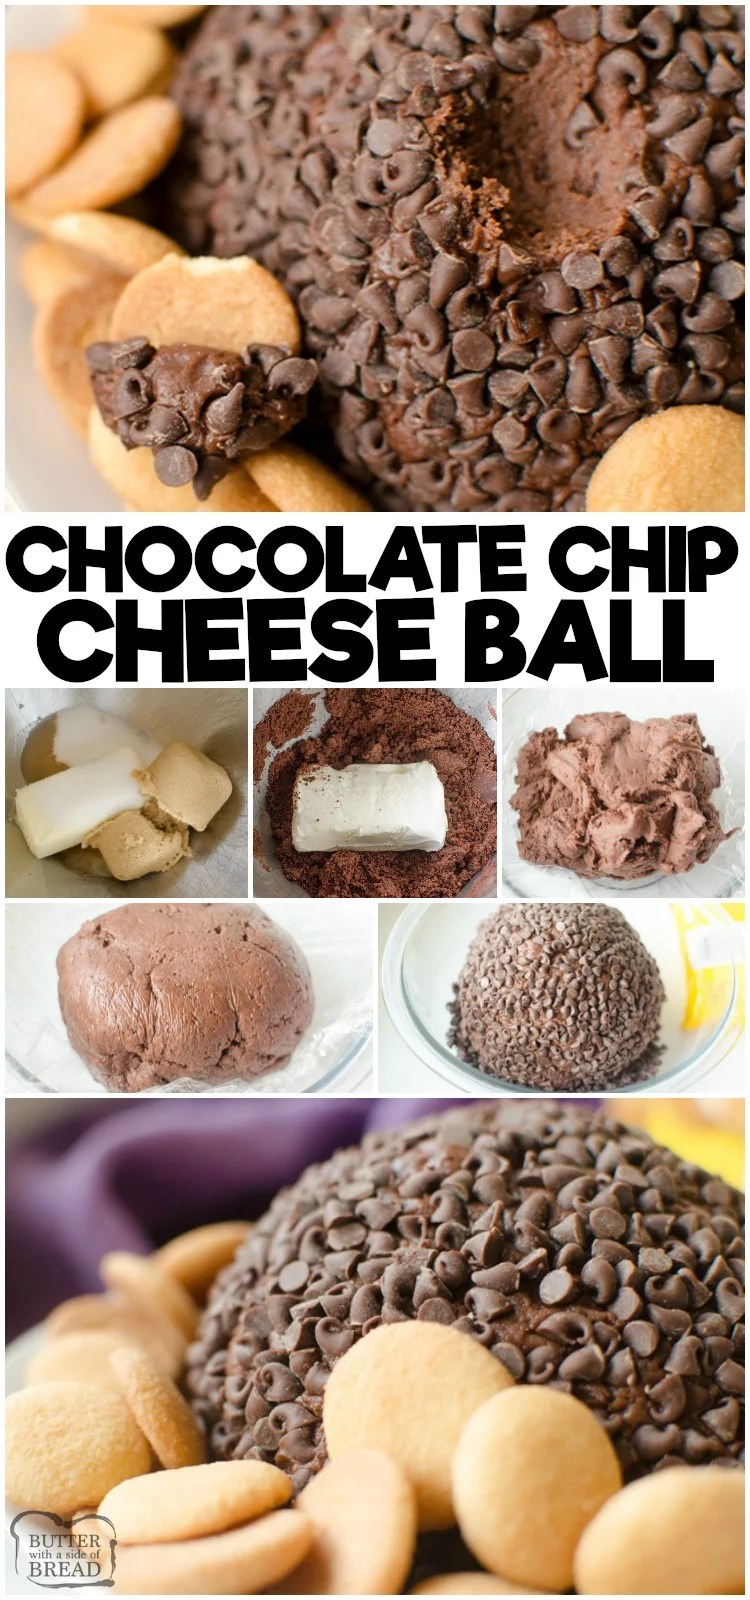 Double Chocolate Chip Cheese Ball is a rich, twice the chocolate cheesecake turned into a sweet cheese ball! The rich chocolate batter combined with the tangy cream cheese then rolled in mini chocolate chips makes this a rich and delicious appetizer or dessert! #cheese #chocolate #chocolatechip #cheeseball #dessert #appetizer #recipe from BUTTER WITH A SIDE OF BREAD